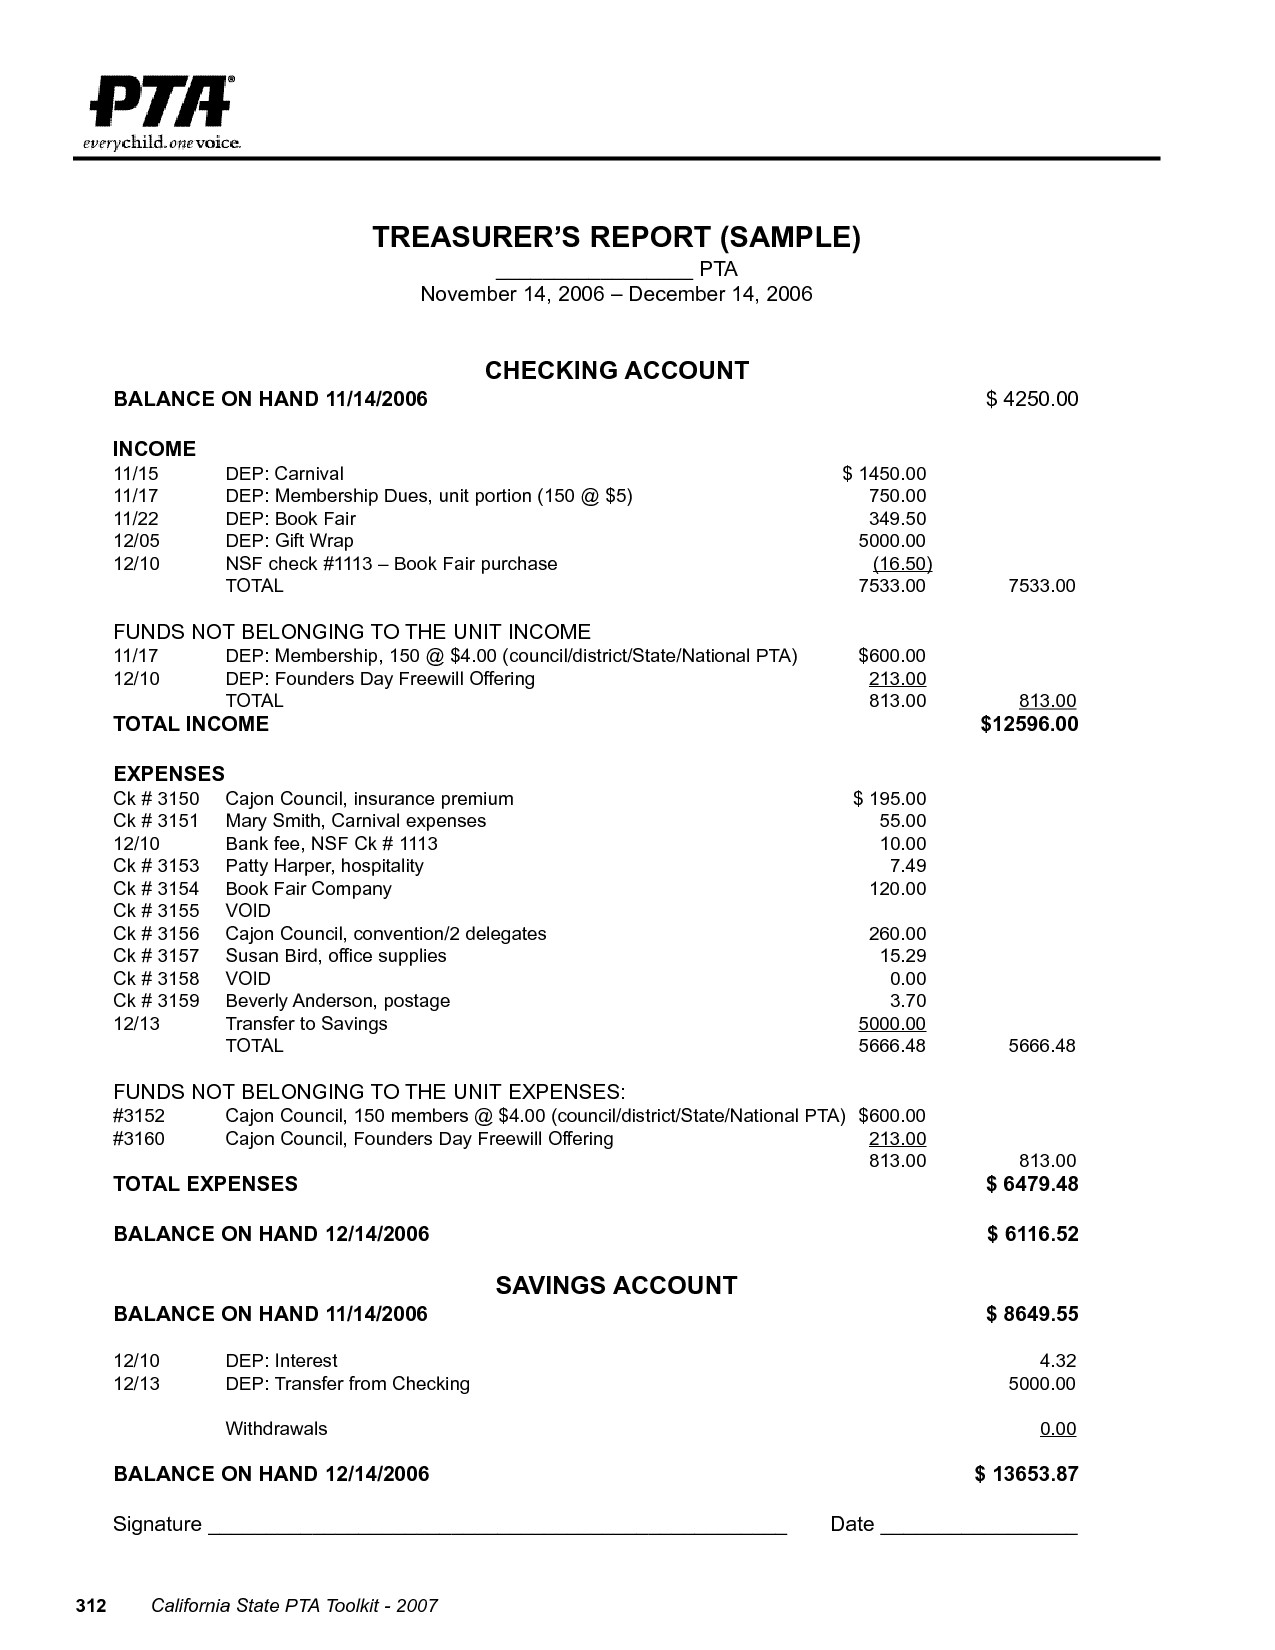 Treasurer Report Template Non Profit the Treasurer's Report